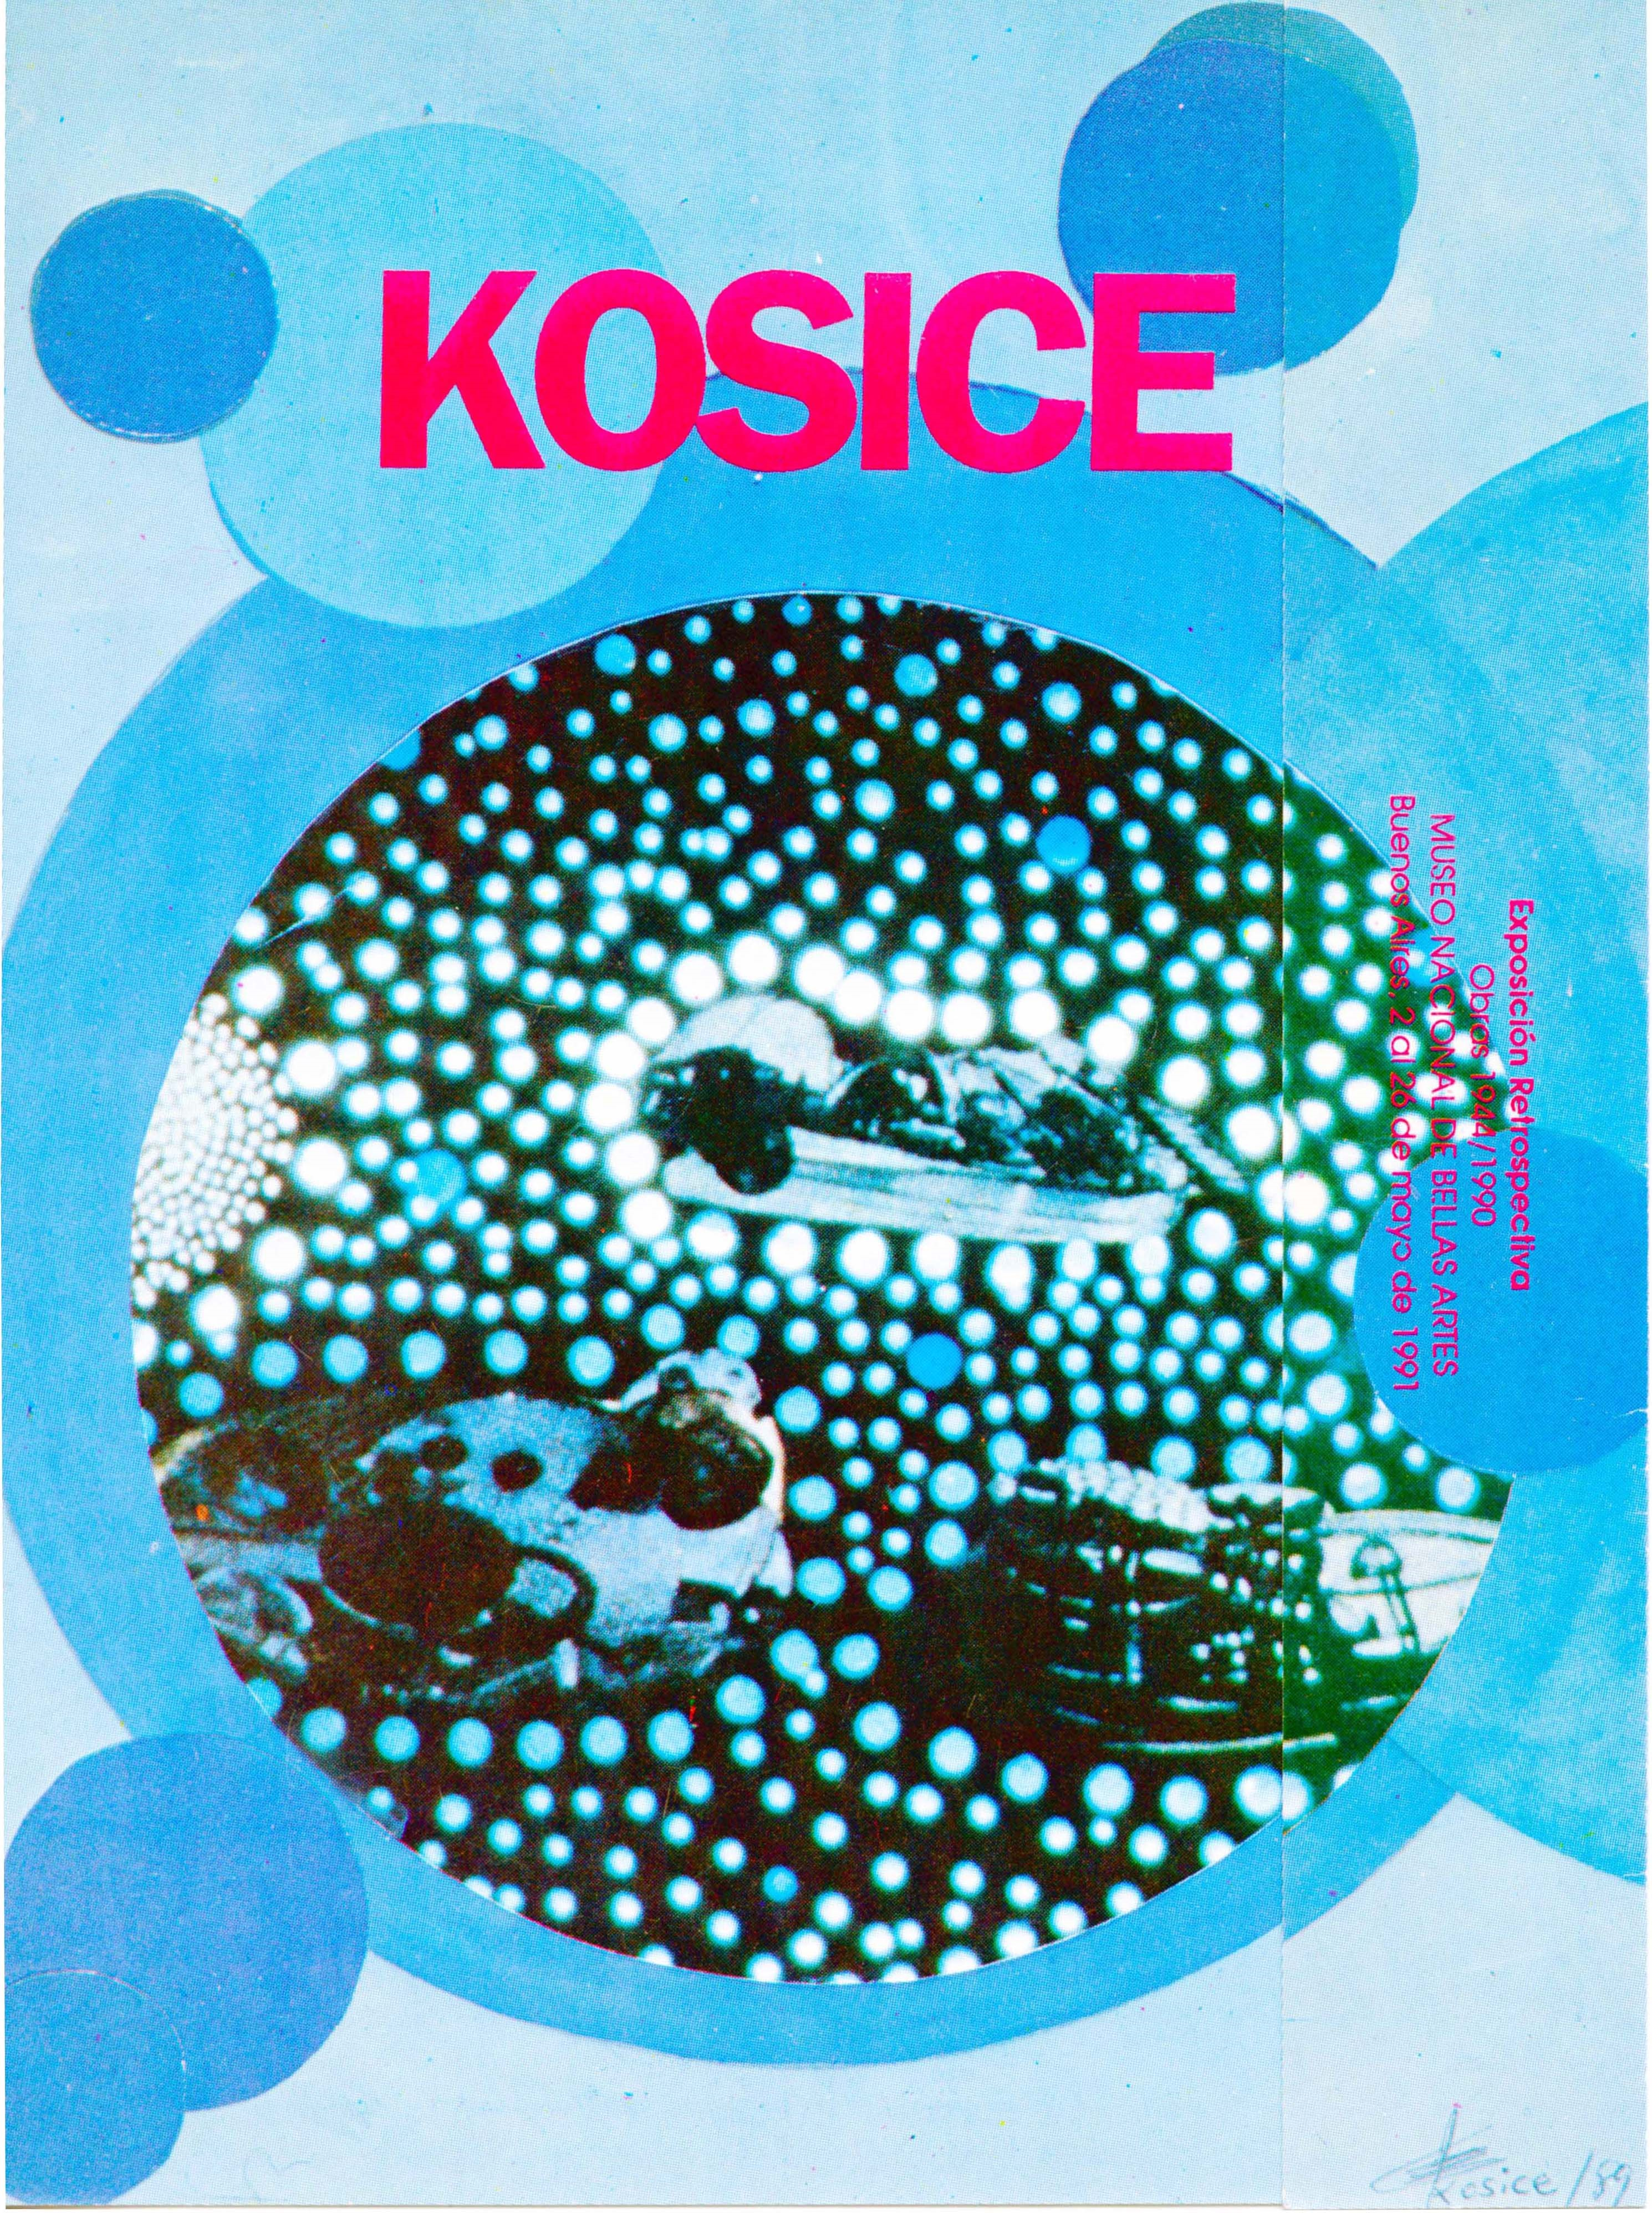 icaa documents 4th anniversary blog post - kosice book cover